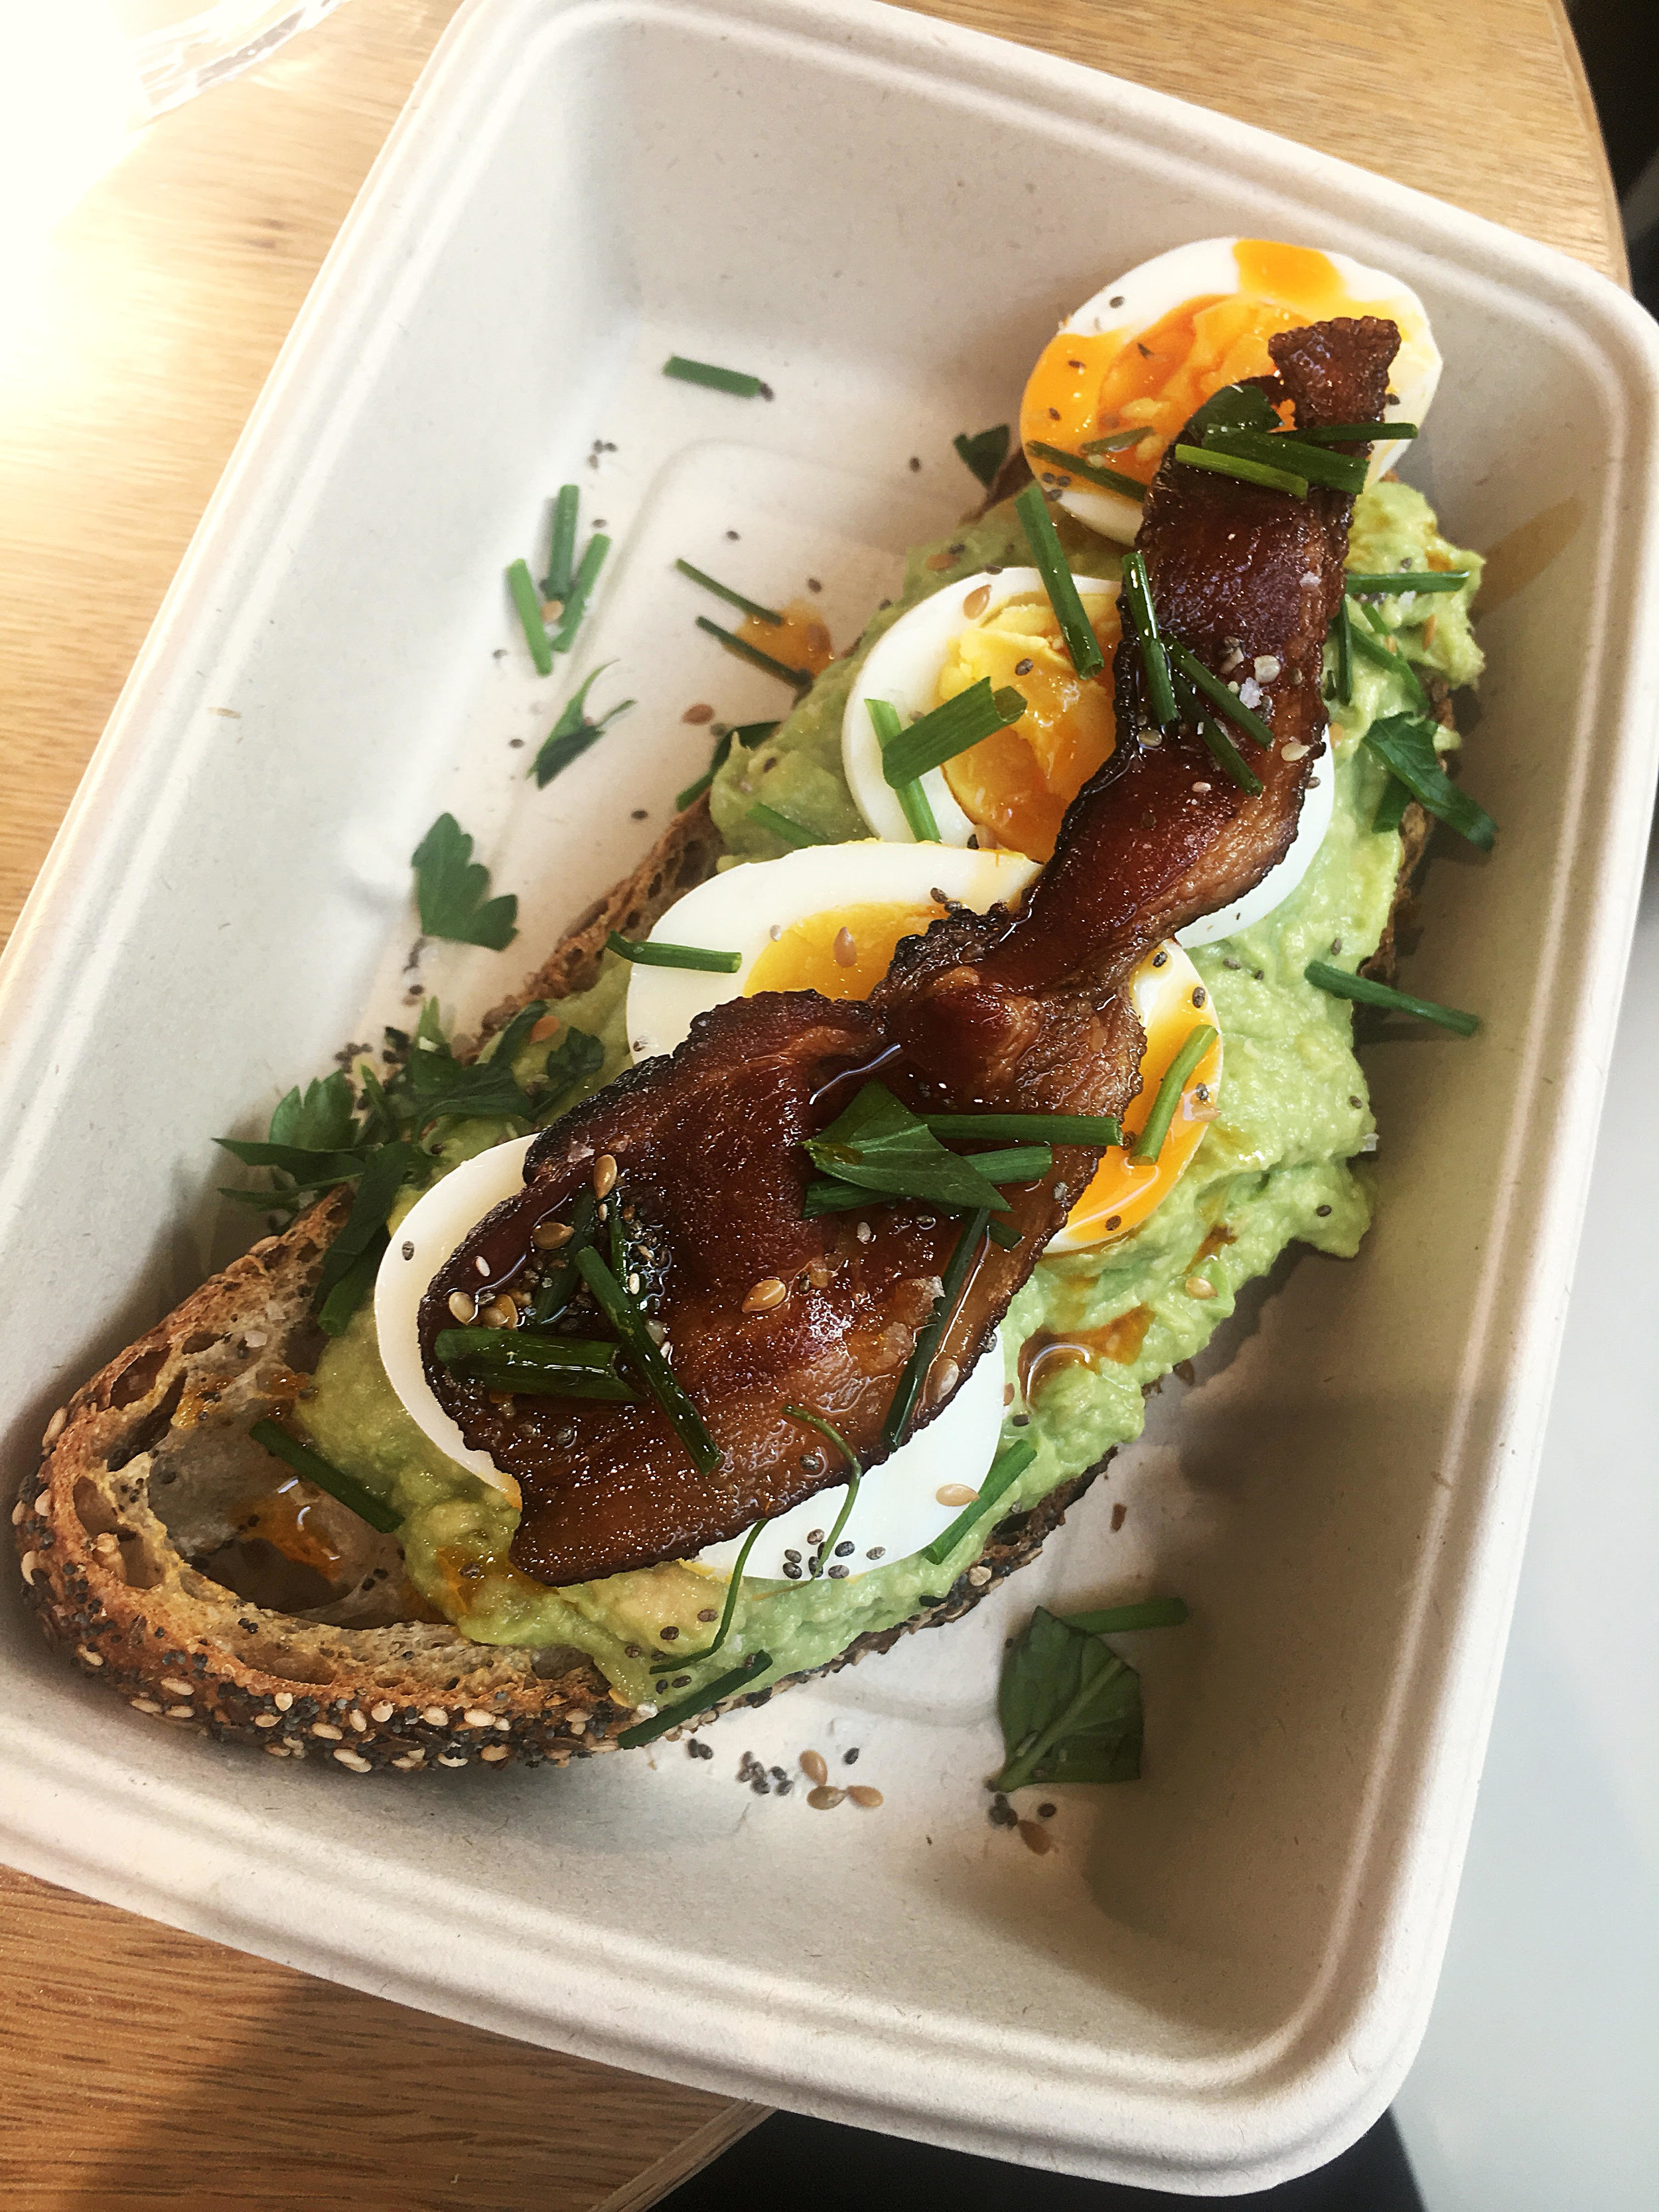 Avocado crush + egg + bacon